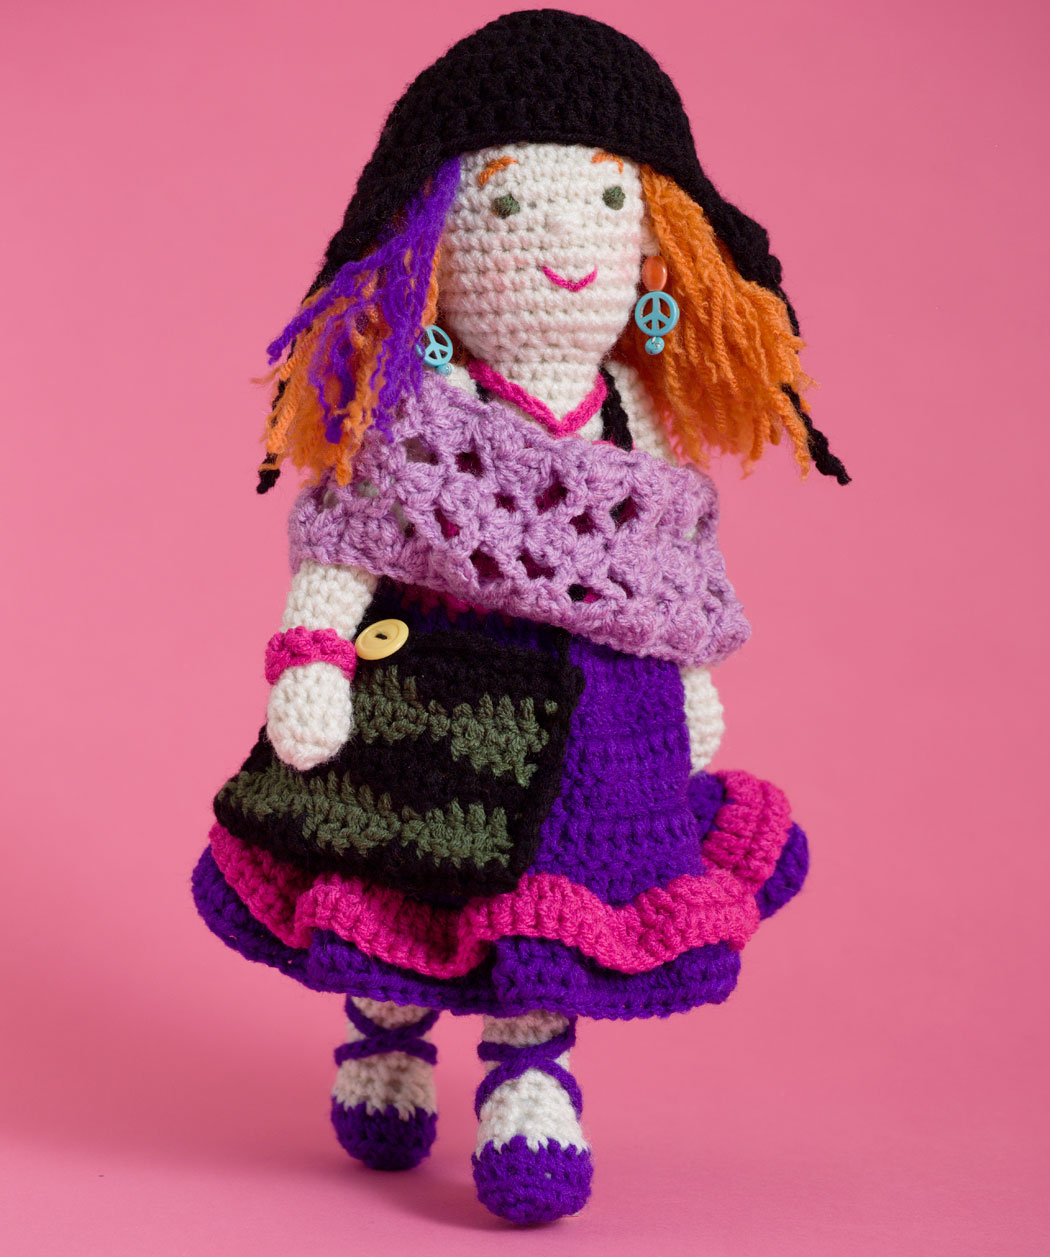 Annies Crochet Patterns : 2000 Free Amigurumi Patterns: Artistic Annie Doll Free Crochet Pattern